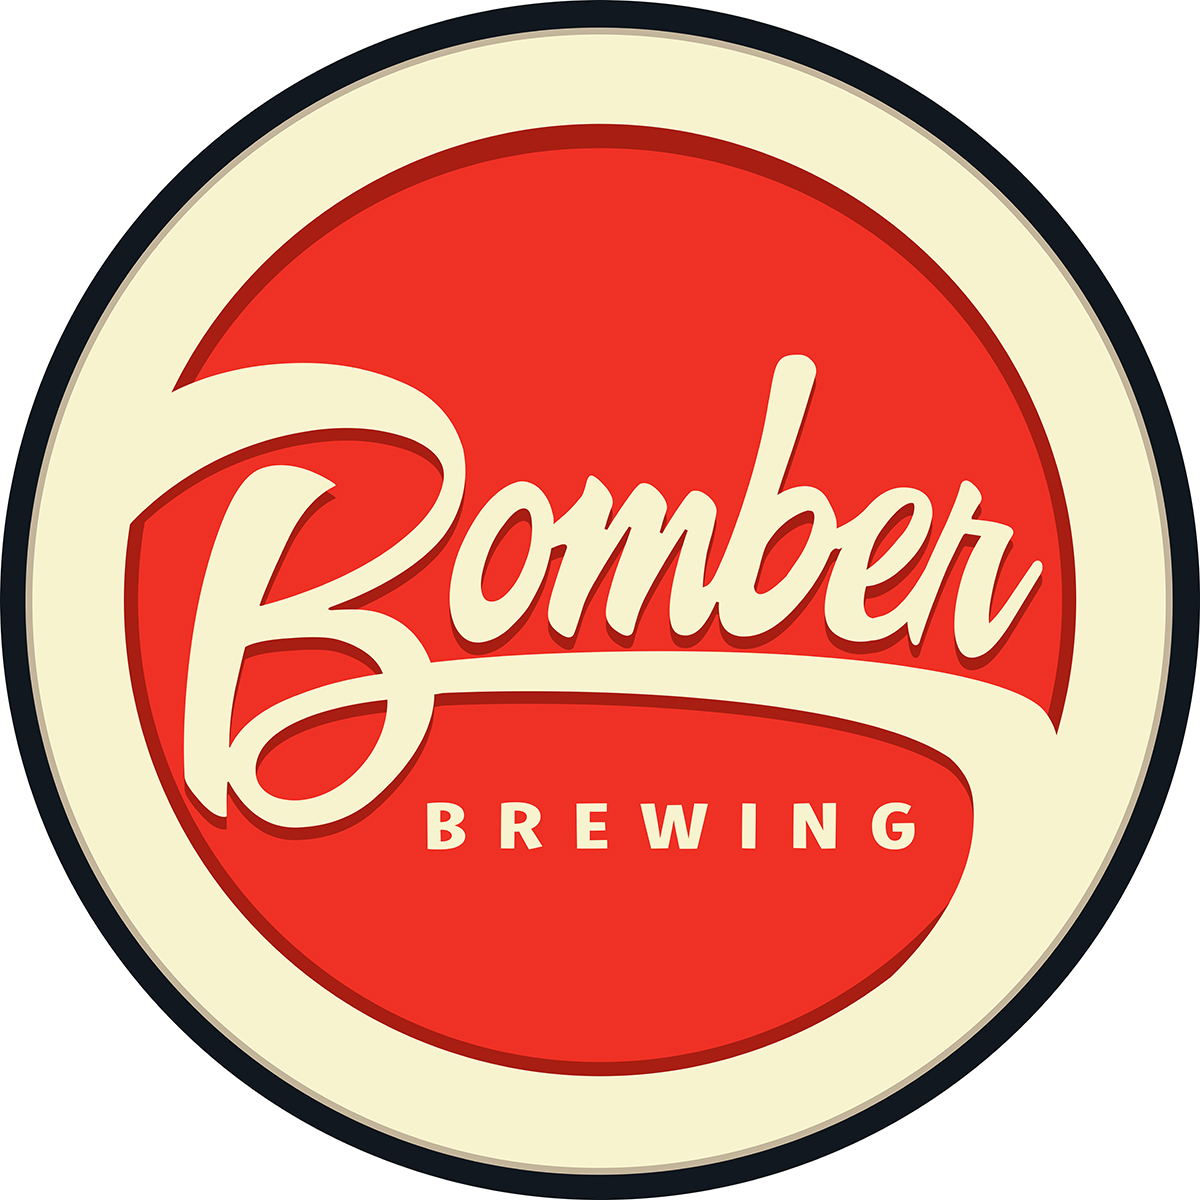 Copy of Bomber Brewing